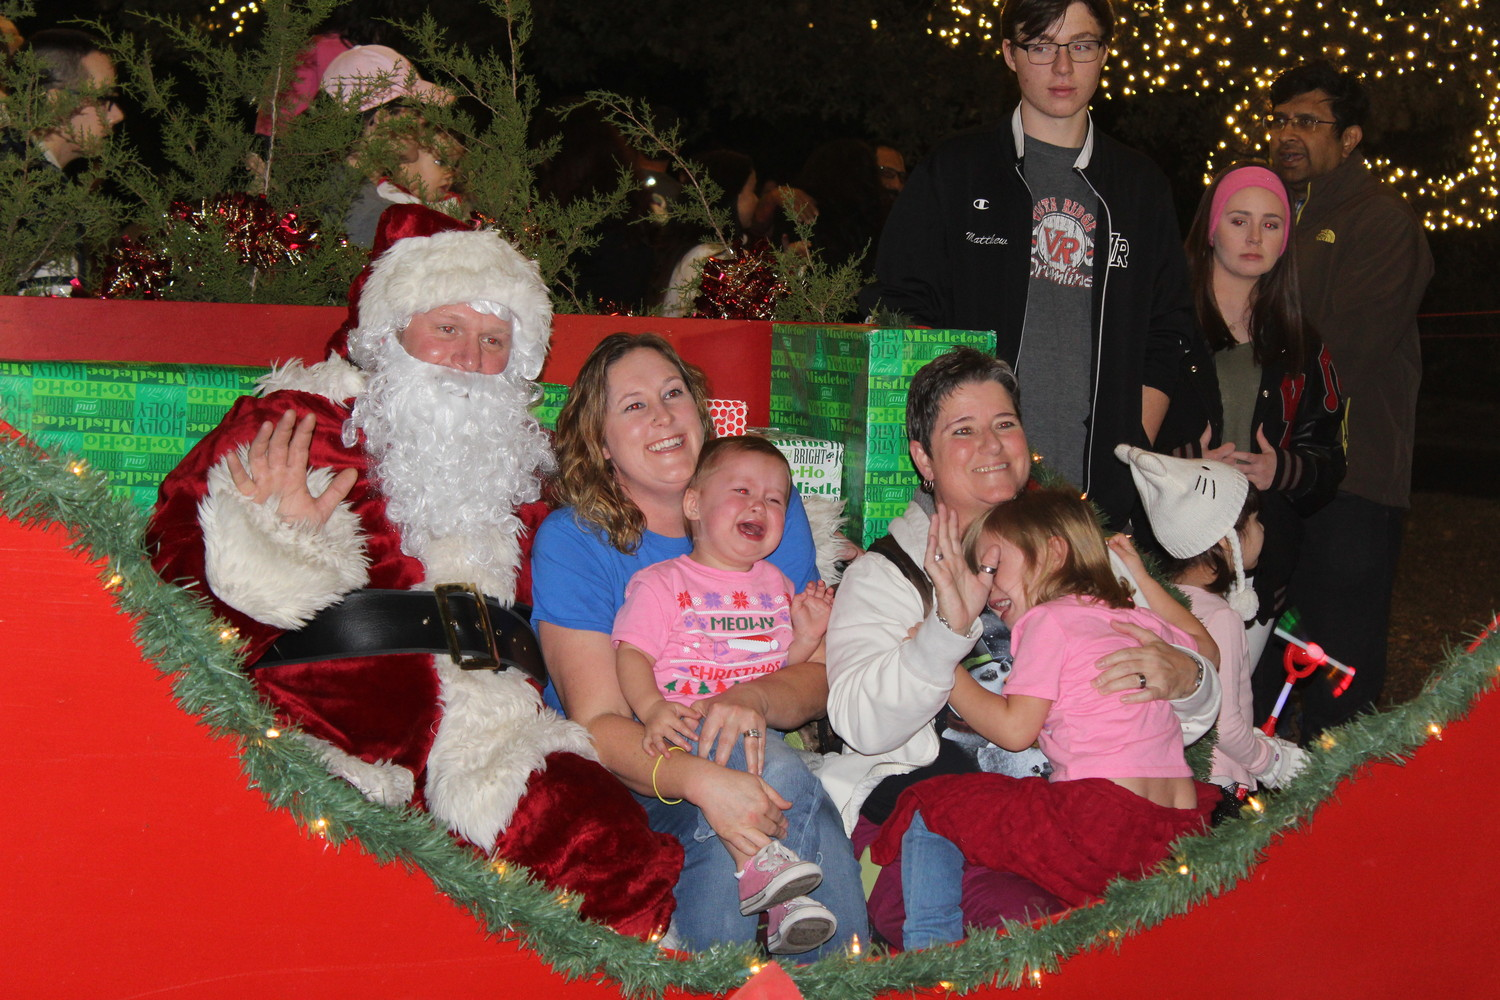 Families pose with Santa during Cedar Park's Santa's Workshop, Dec. 1, 2017.